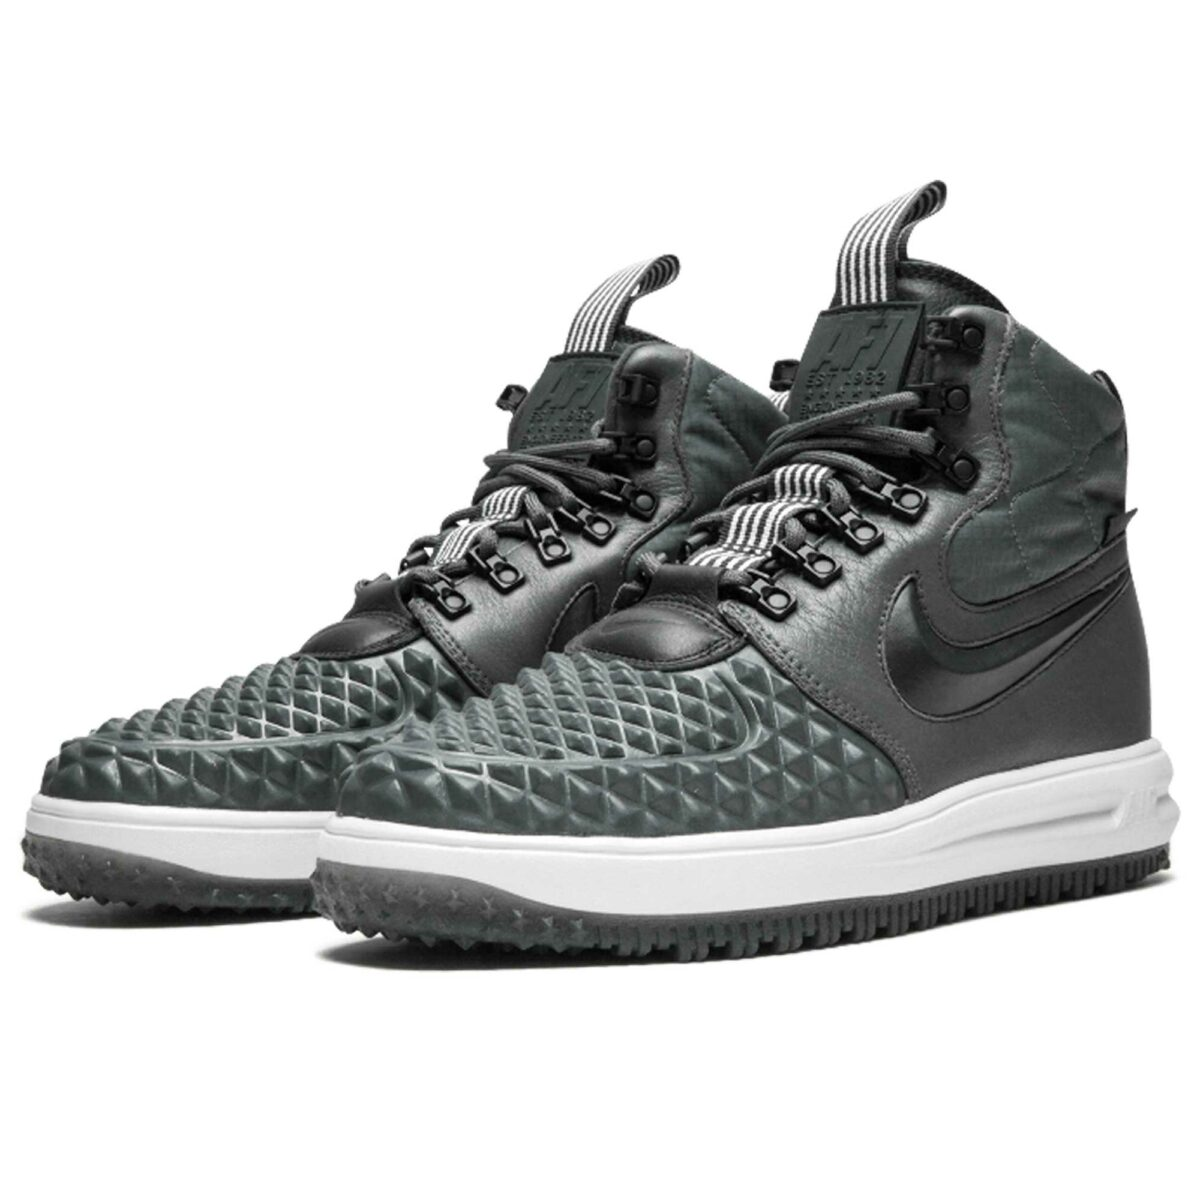 nike air lunar force 1 duckboot'17 grey mint 916682_003 купить